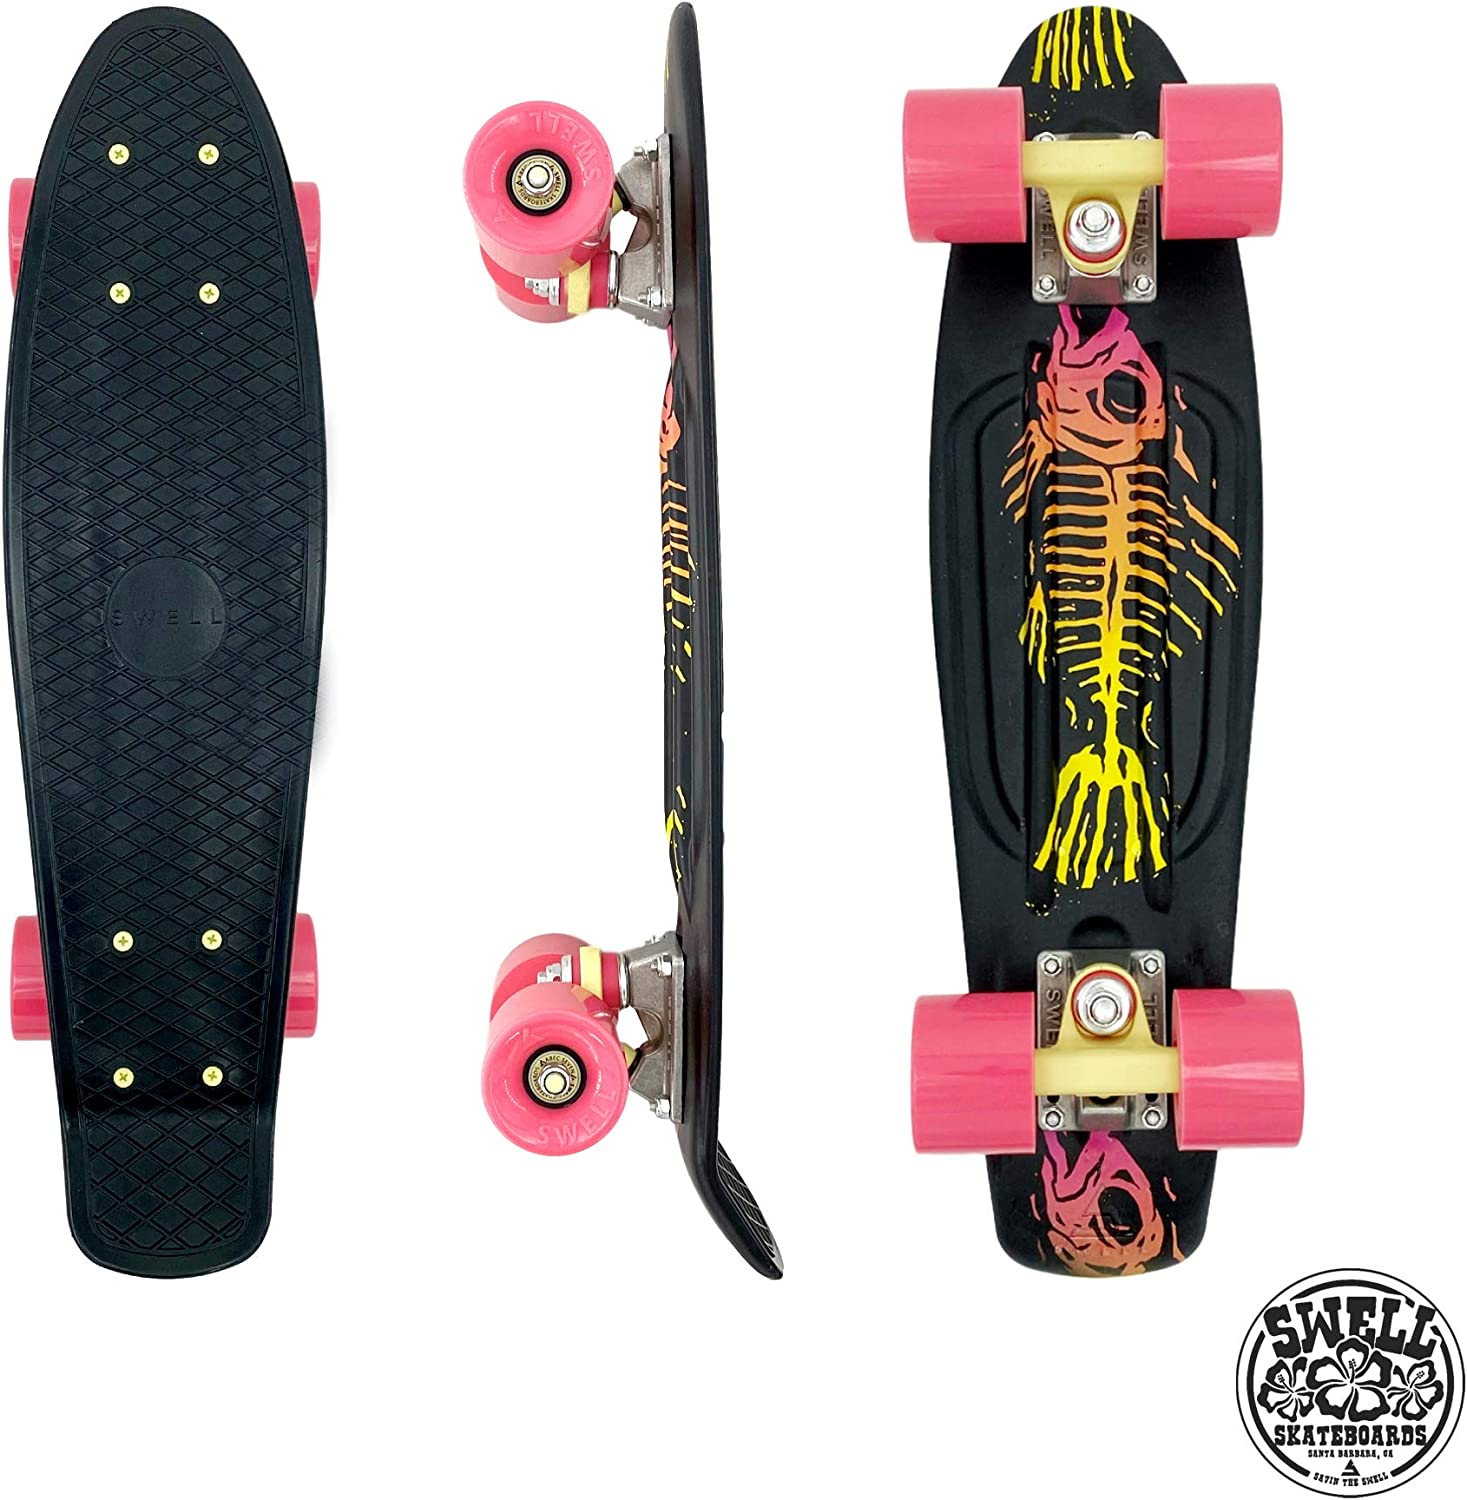 Shipping included Swell Skateboards 22 28 Inch Max 62% OFF Kids Cruiser Mini for Plastic